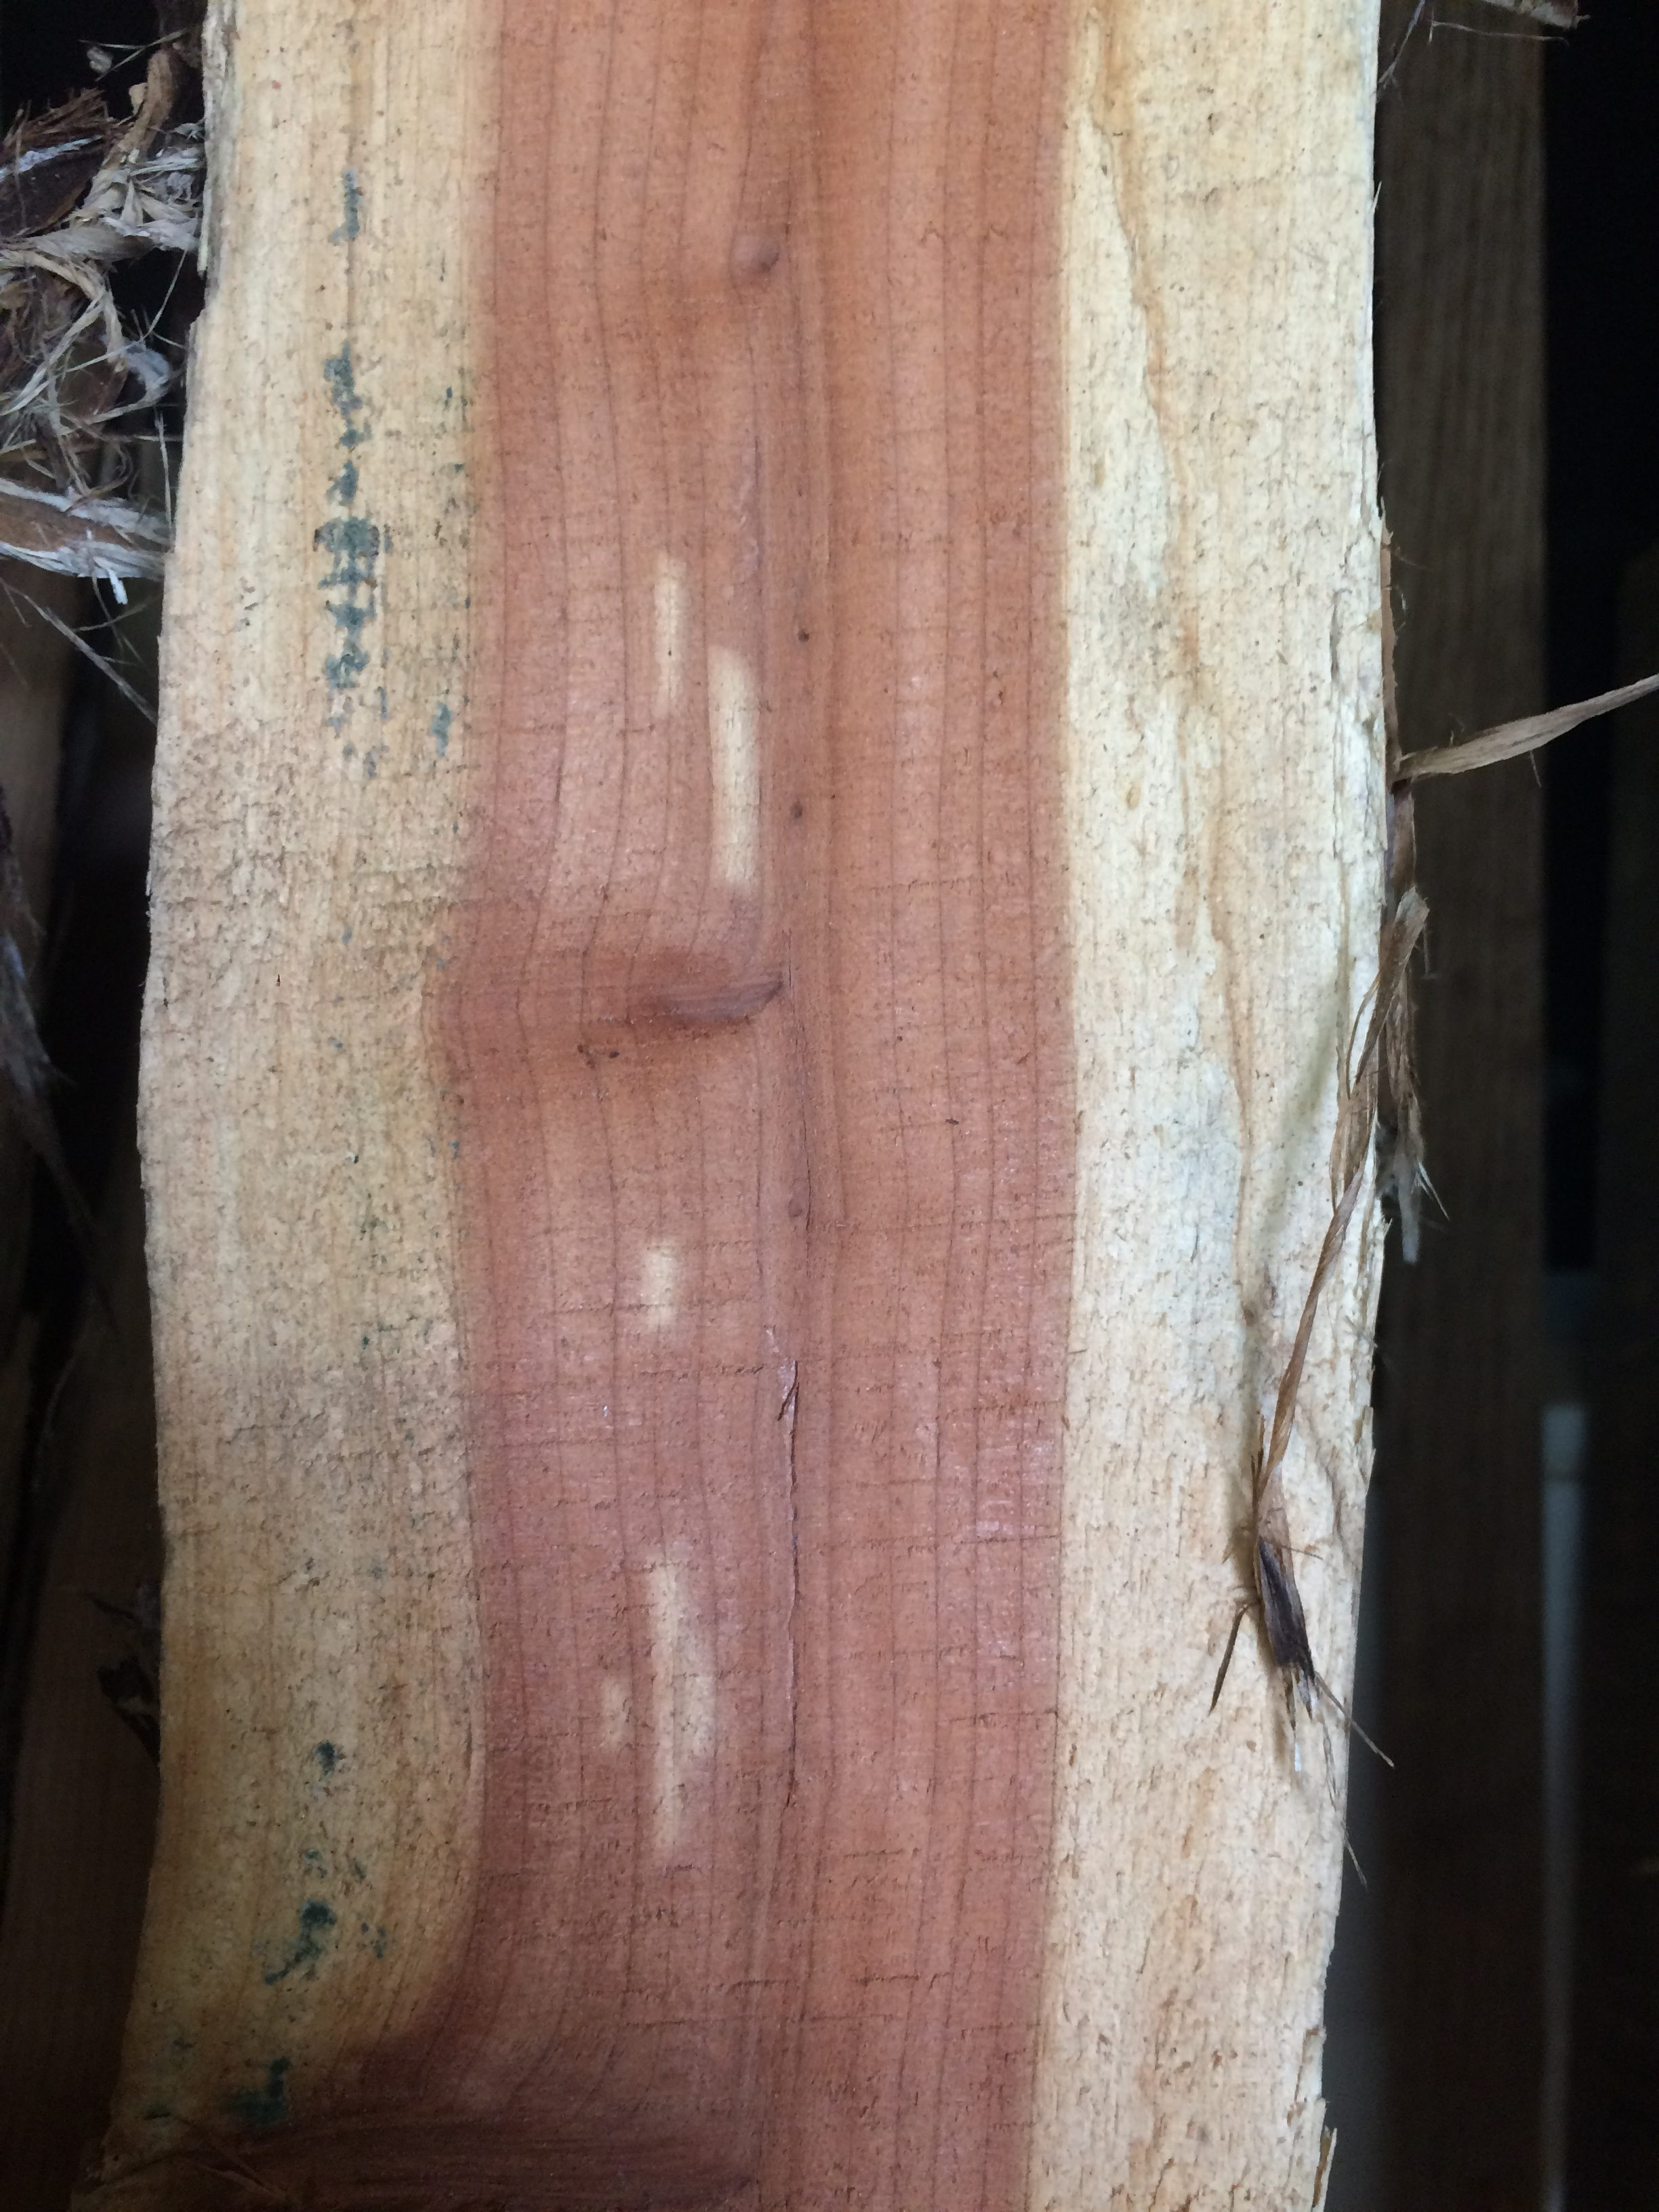 CEDAR - Cedar is light and porous. It stands up against moisture and pests well compared to other woods.